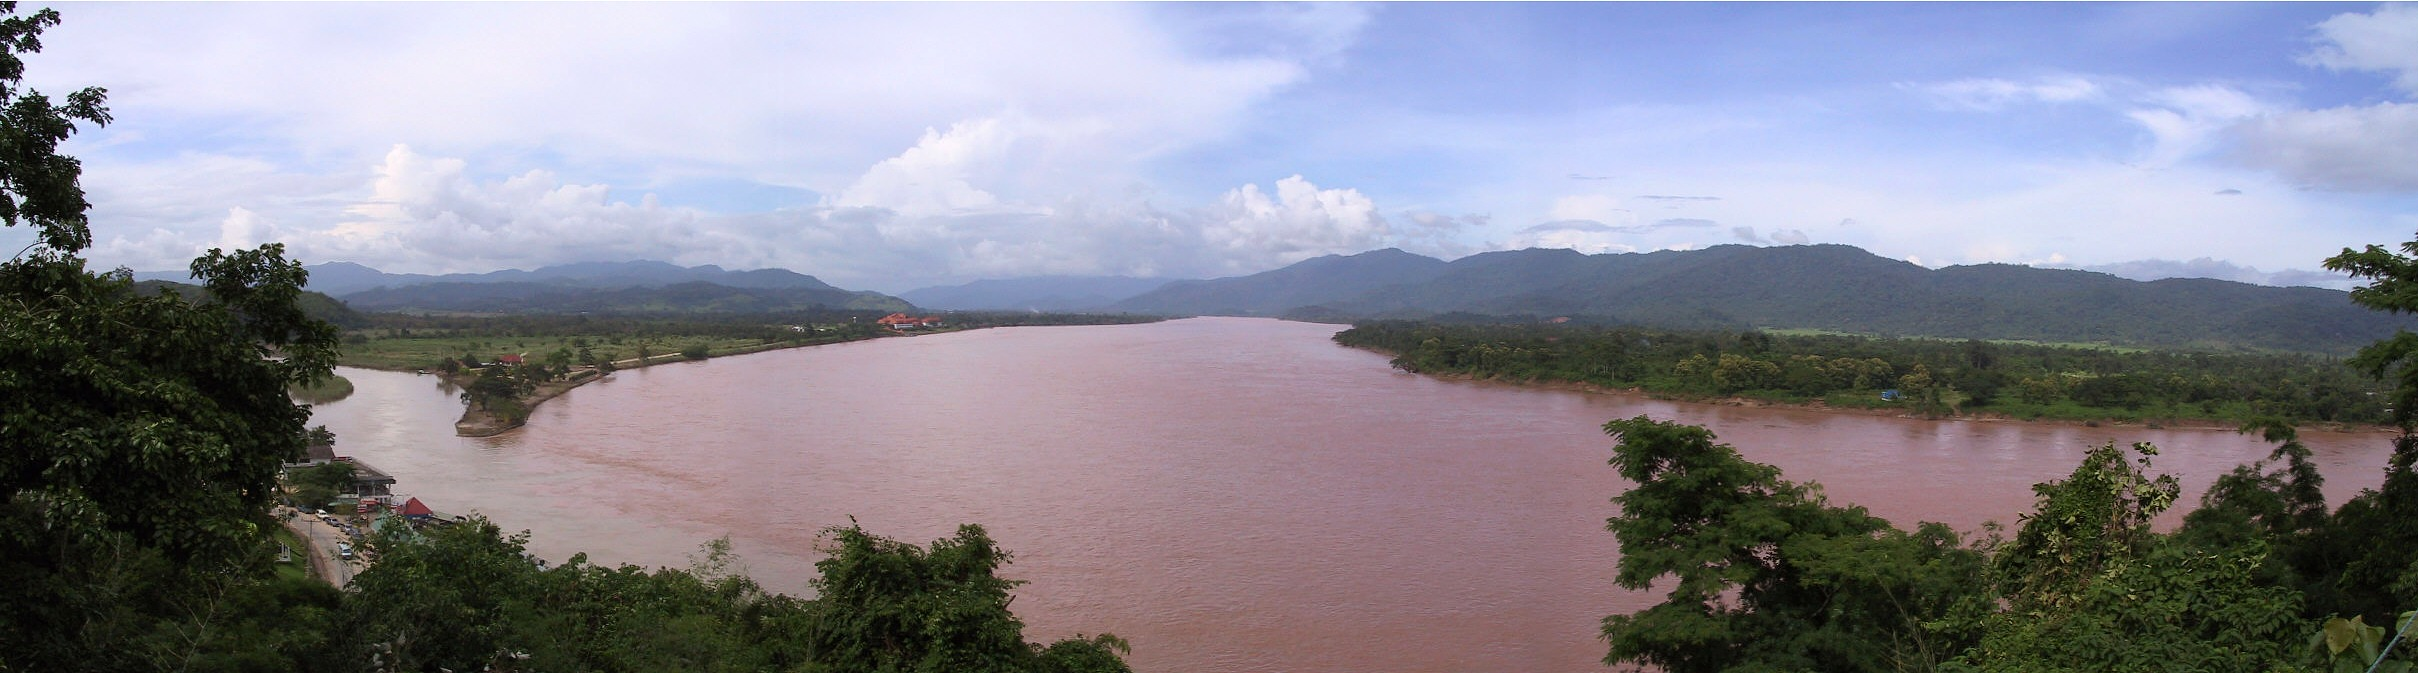 Mekong river: 346 KB; click on the image to enlarge